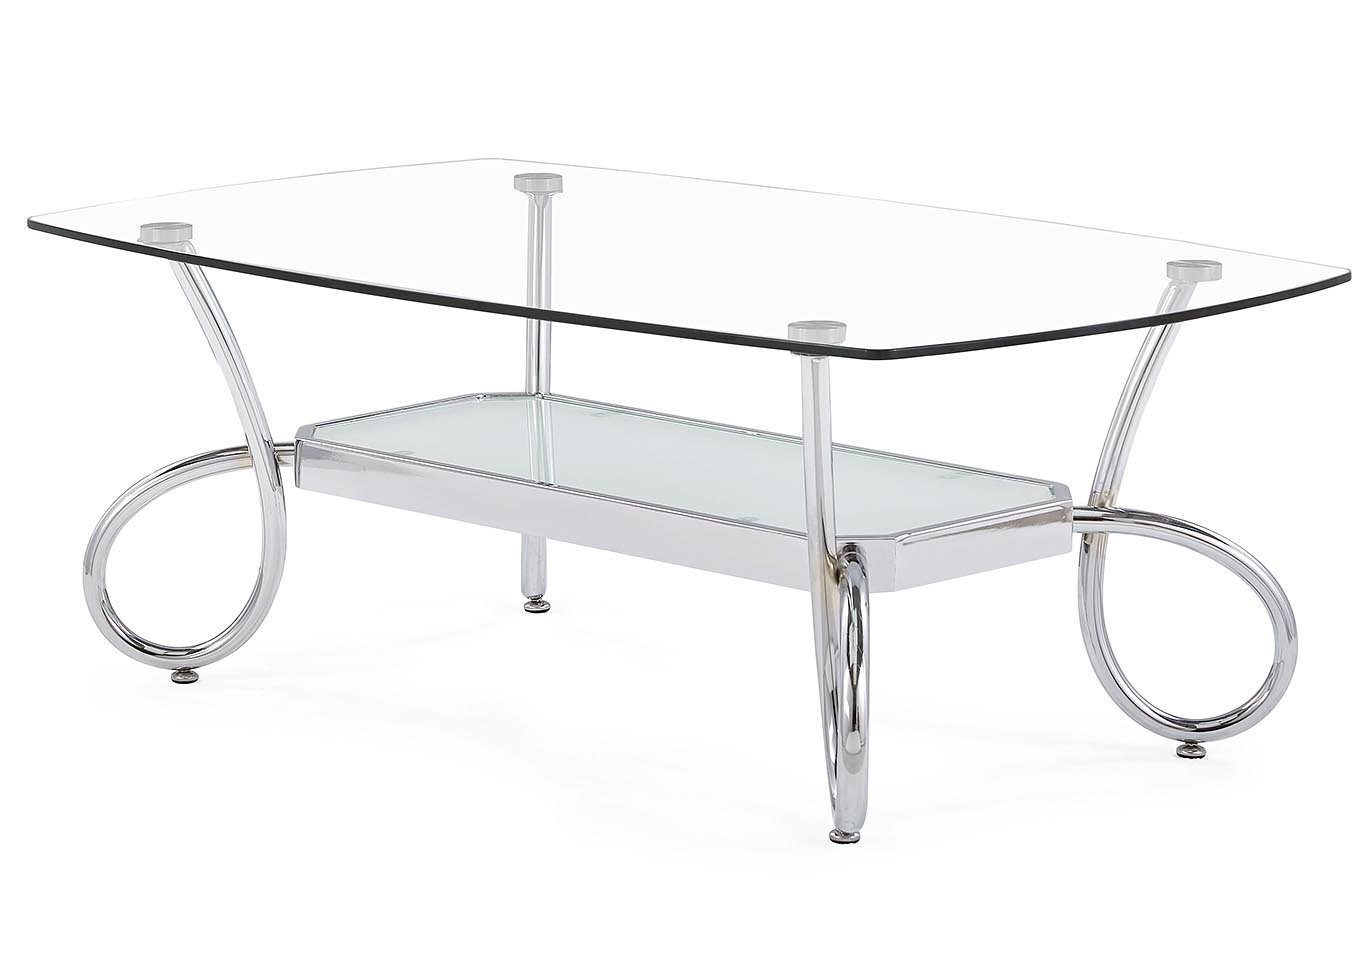 Fine Deals More Furniture Philadelphia Pa Glass Top Coffee Table Download Free Architecture Designs Crovemadebymaigaardcom